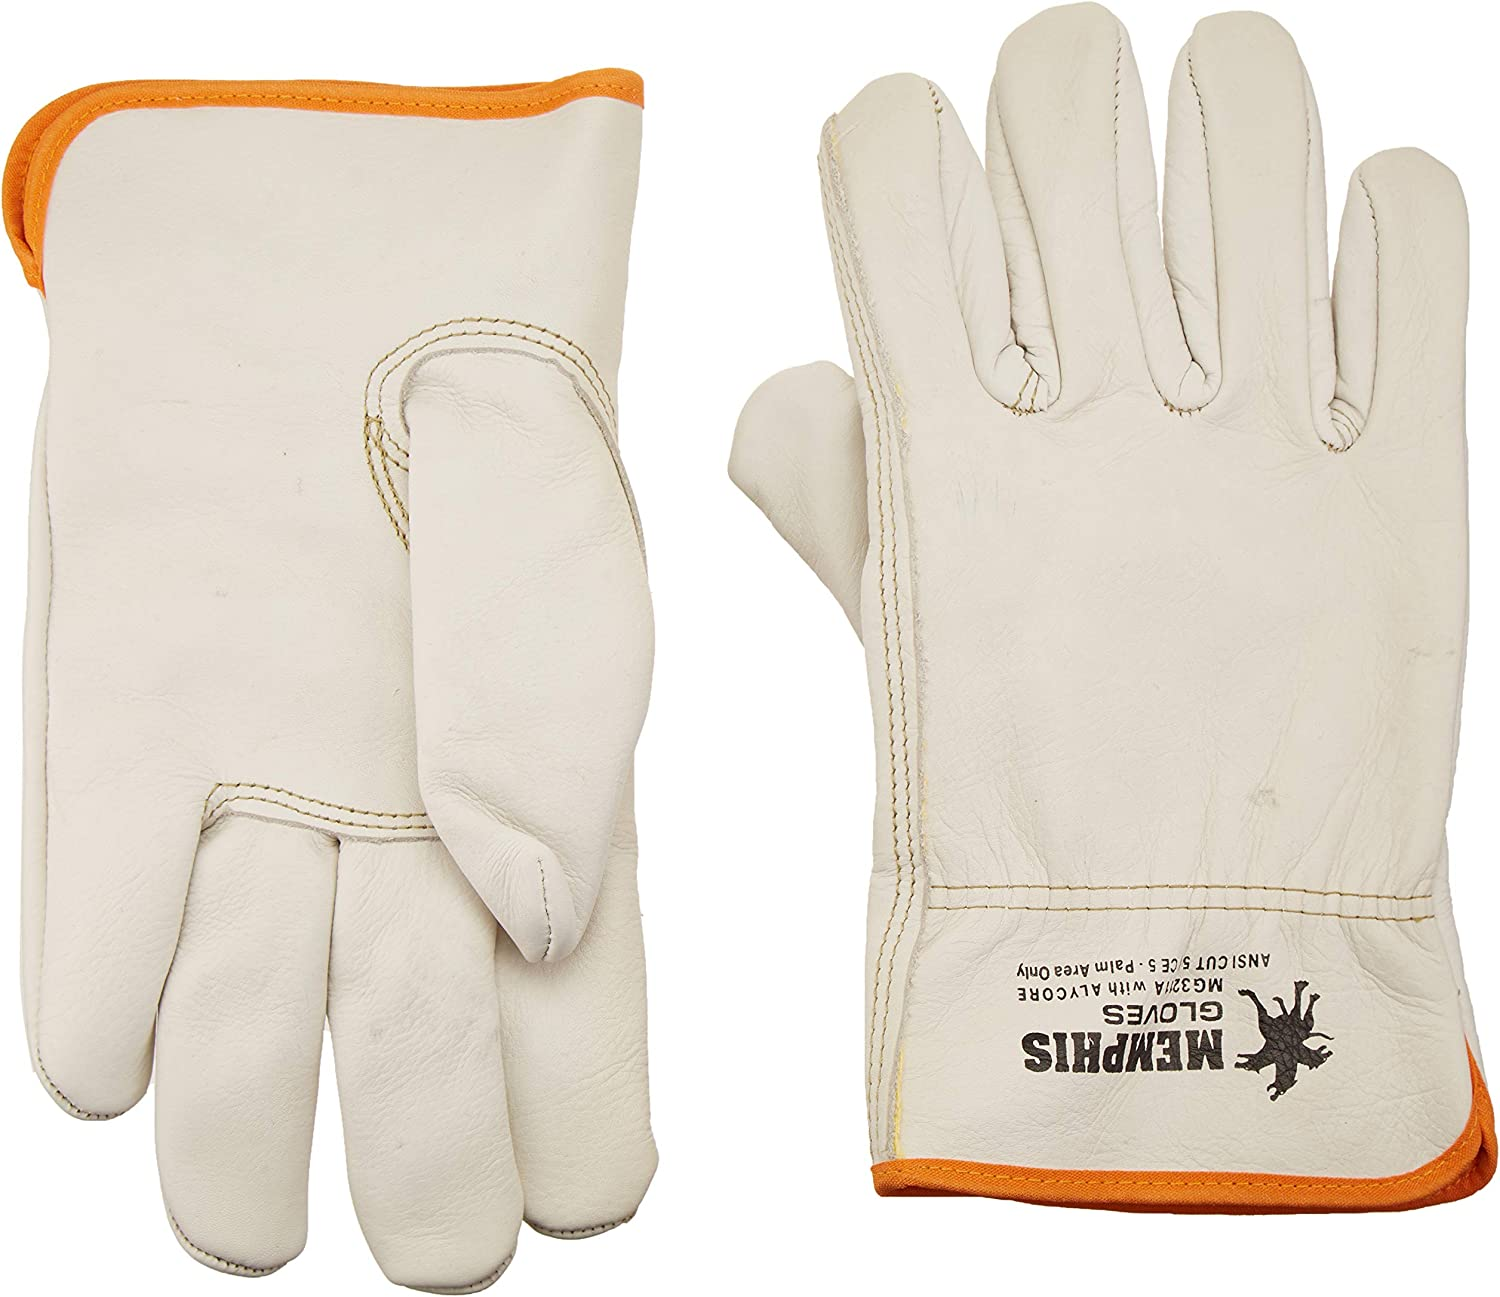 4-PAIR ECONOMIC DRIVER WORK GLOVES KEYSTONE COW GRAIN WITH SPLIT LEATHER BACK L